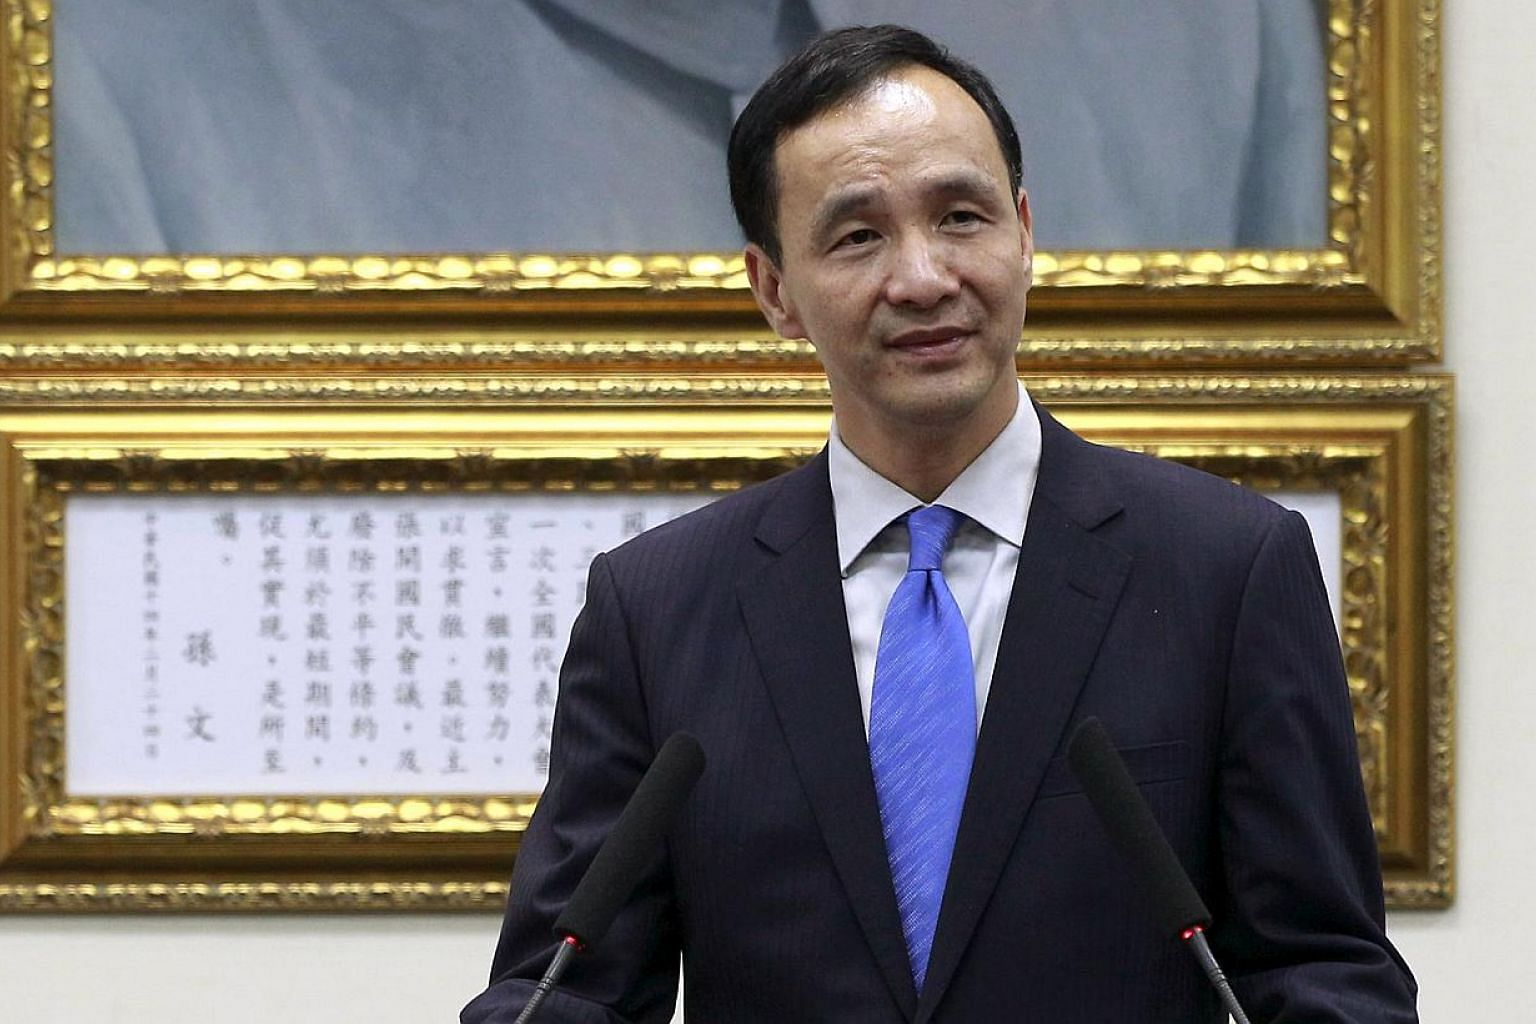 Eric Chu, chairman of Taiwan's ruling Nationalist Kuomintang Party (KMT), gives a speech during a news conference in Taipei, Taiwan on May 1, 2015. -- PHOTO: REUTERS